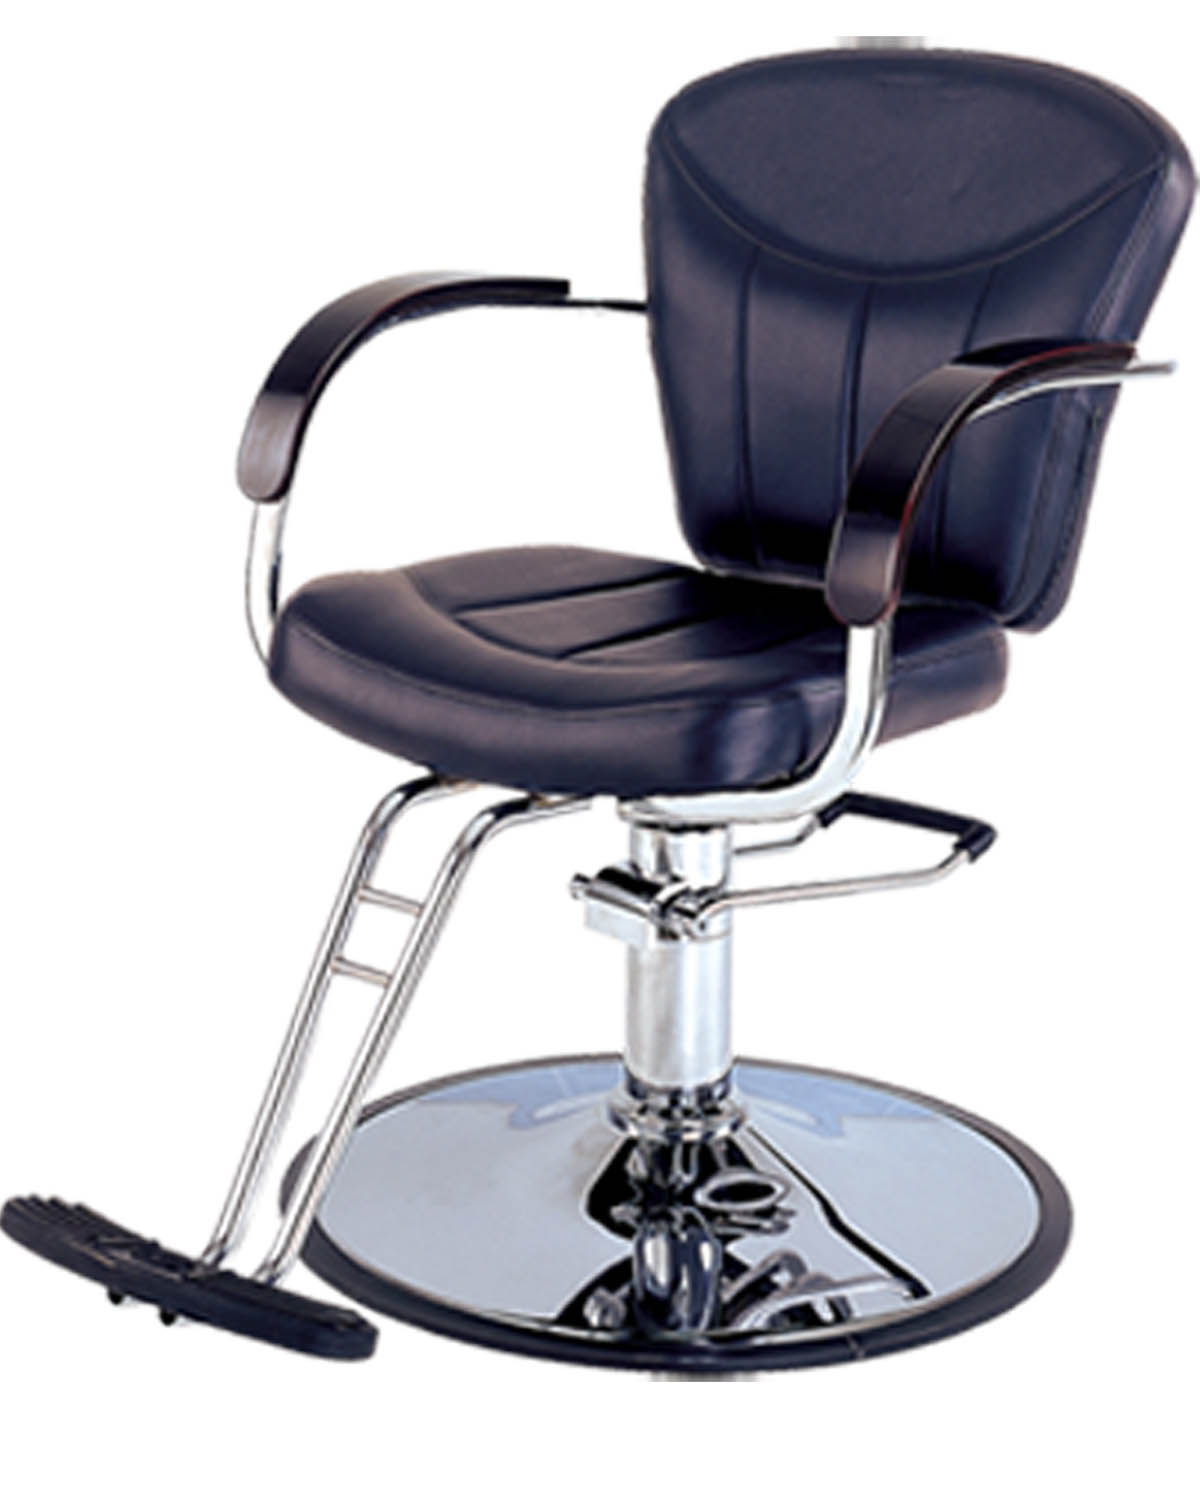 Beauty salon equipment trinidad classifieds for Accessories for beauty salon